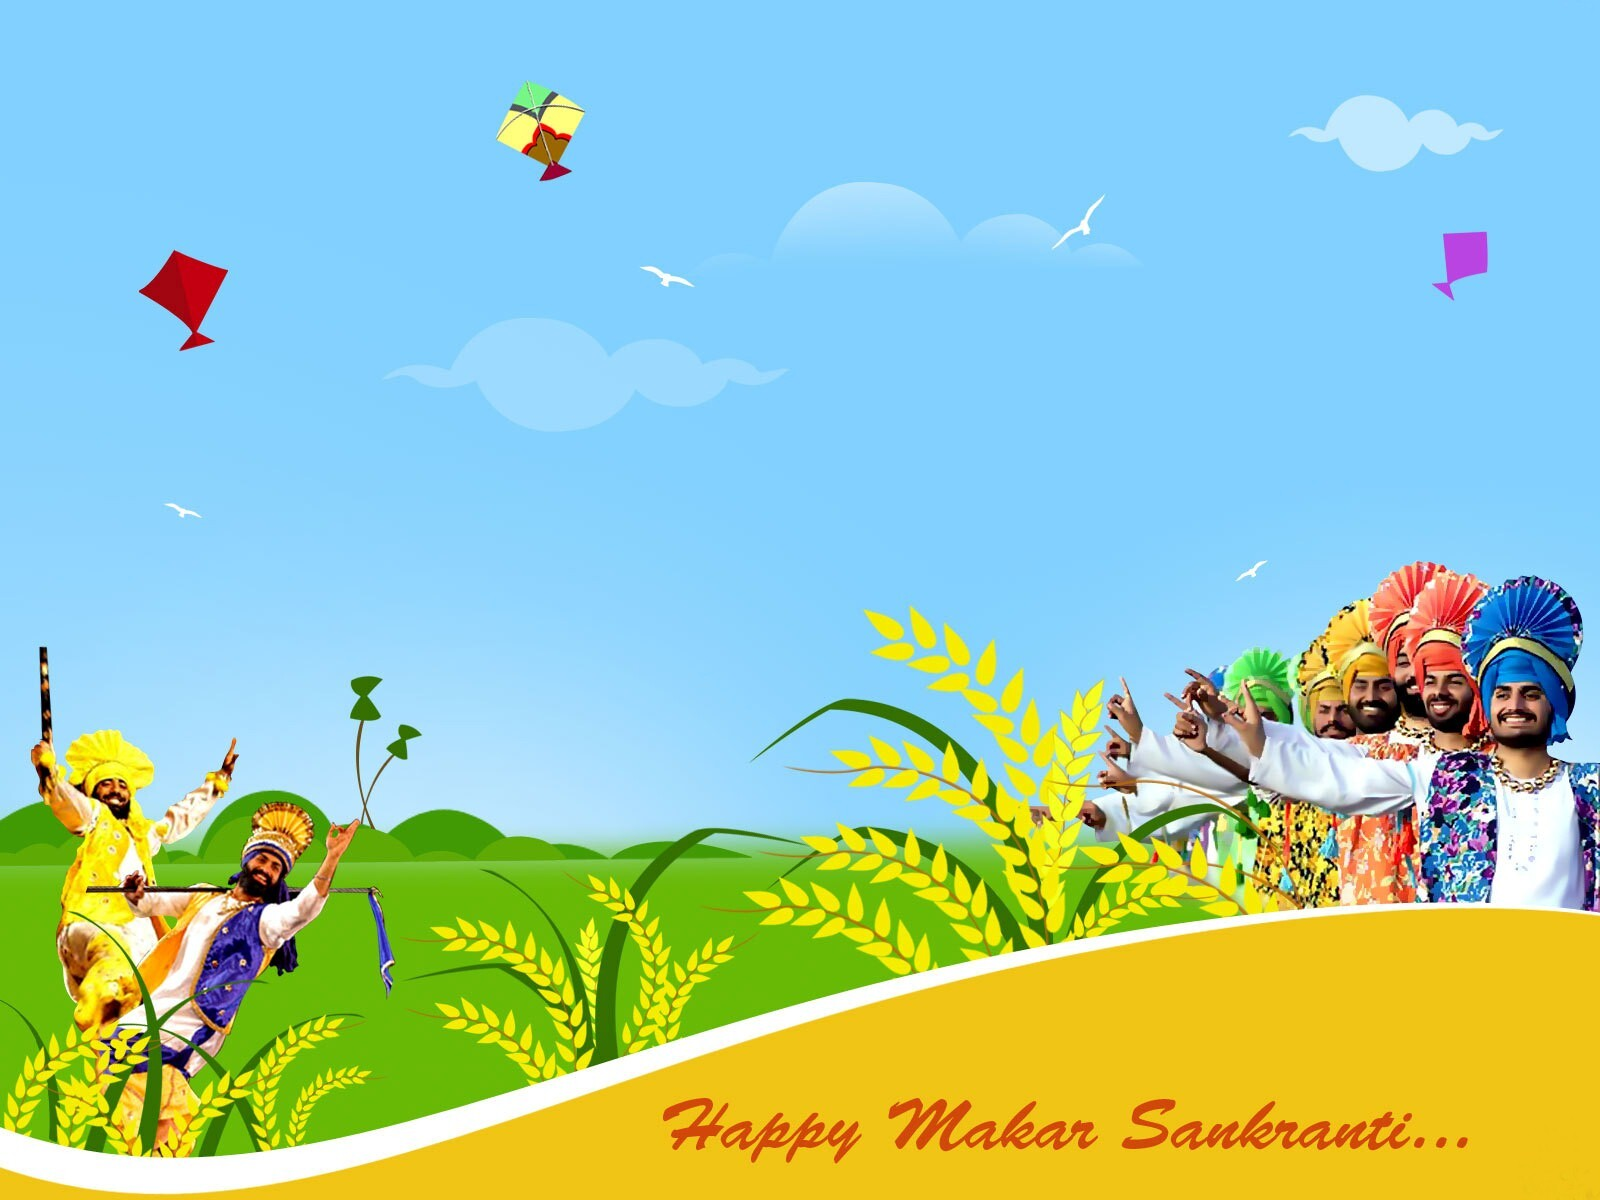 Happy makar sankranti greetings indian festival hd images hd happy makar sankranti greetings indian festival hd images hd wallpapers m4hsunfo